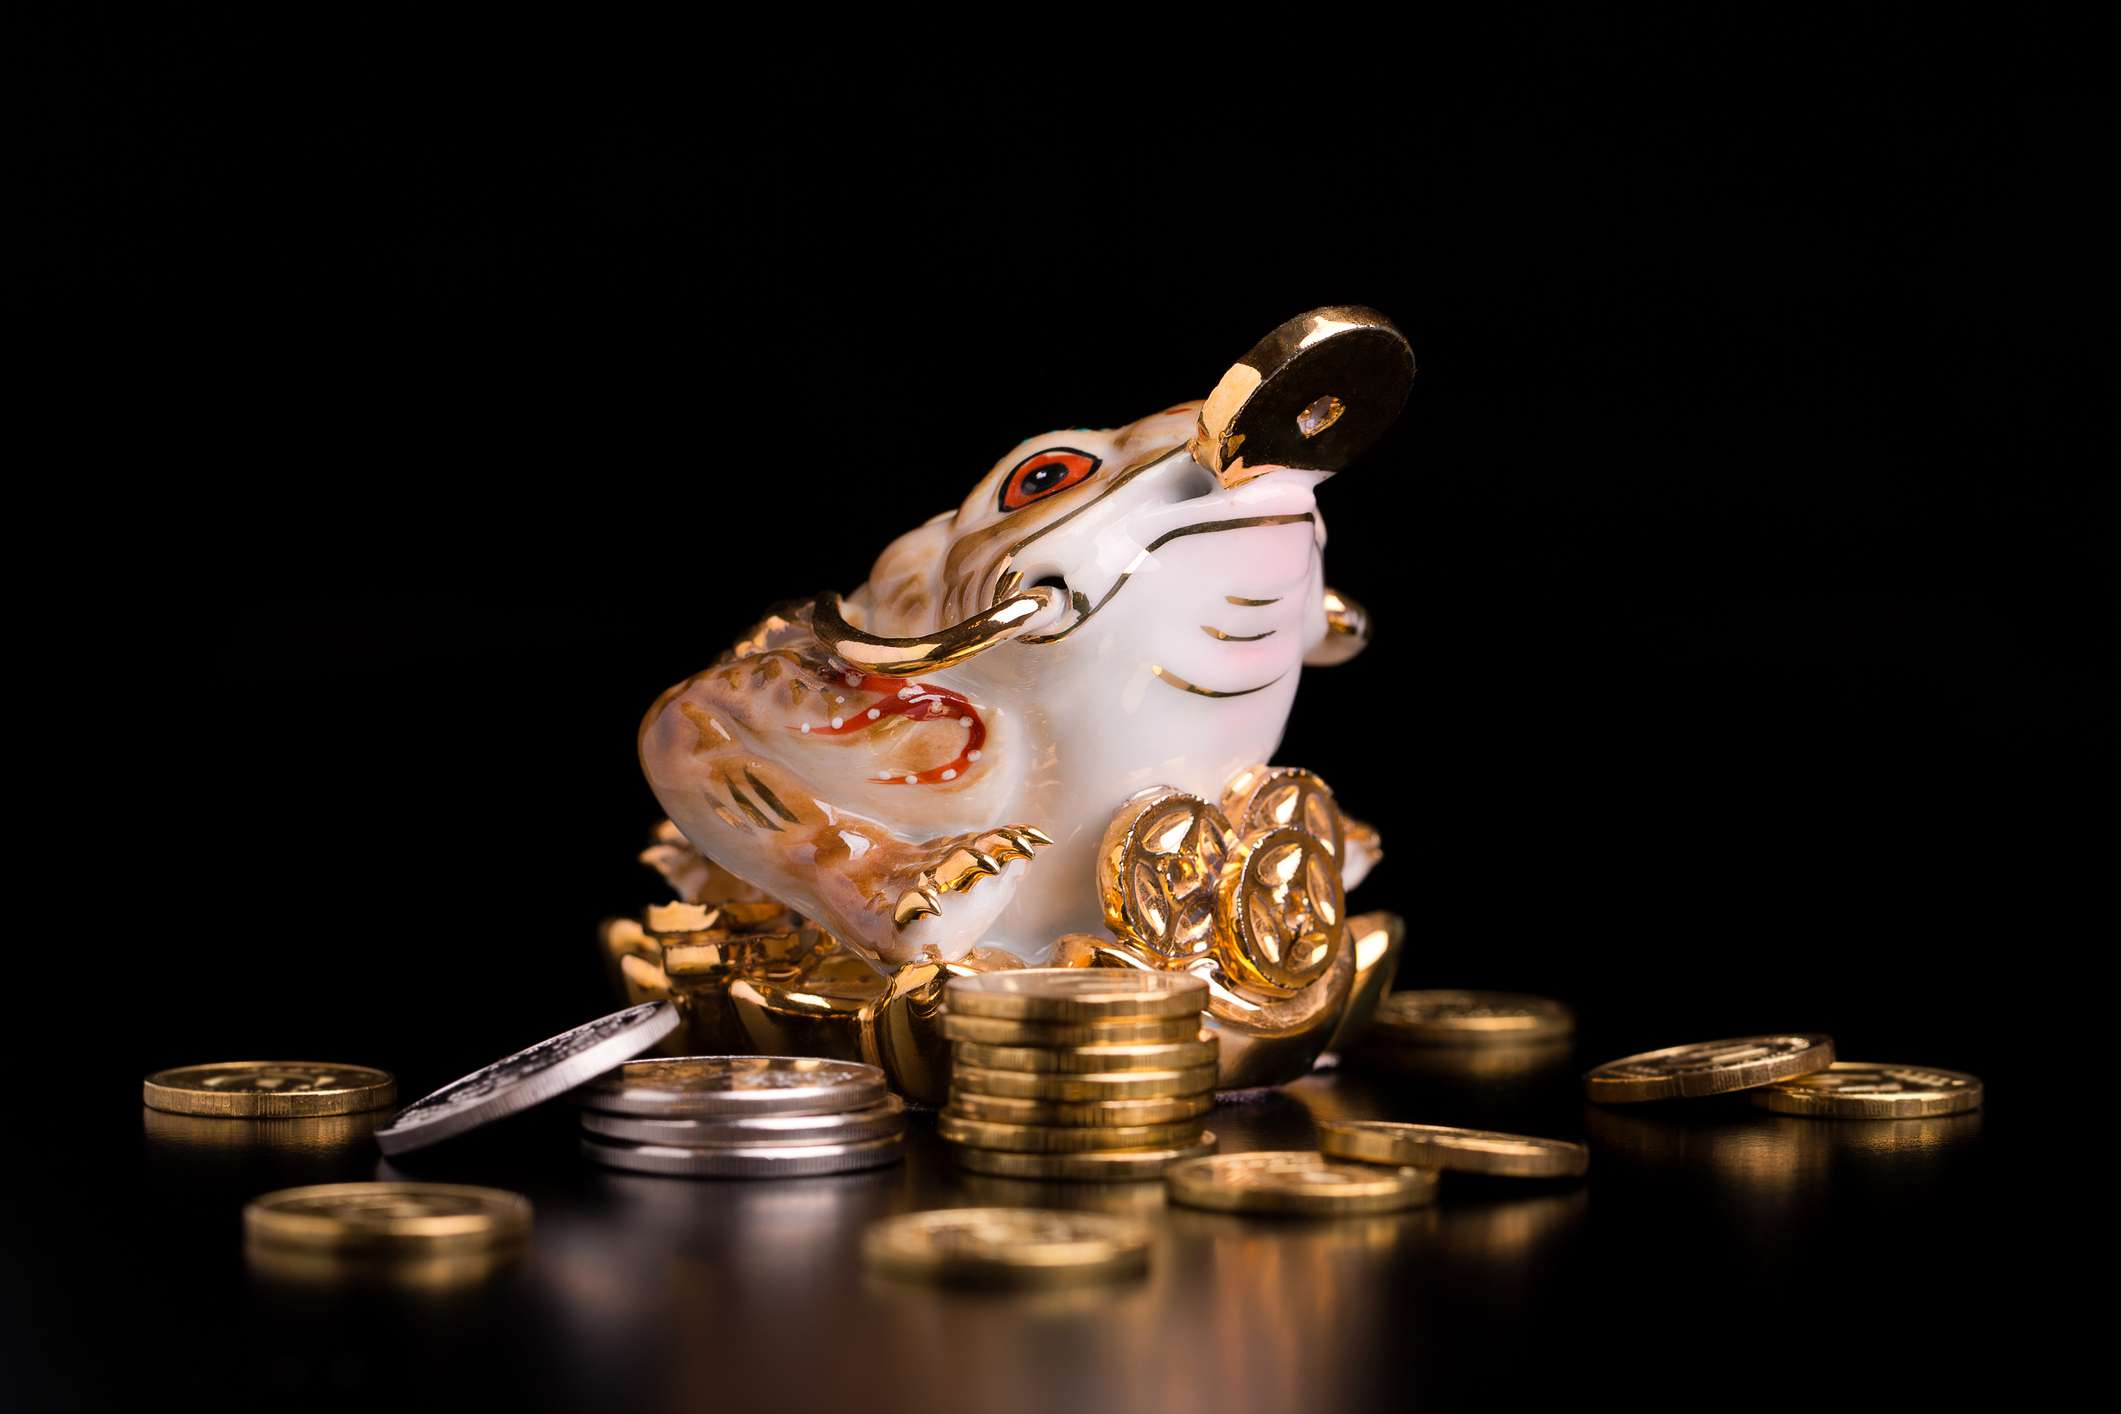 Figurine of the feng shui money toad with Chinese coins